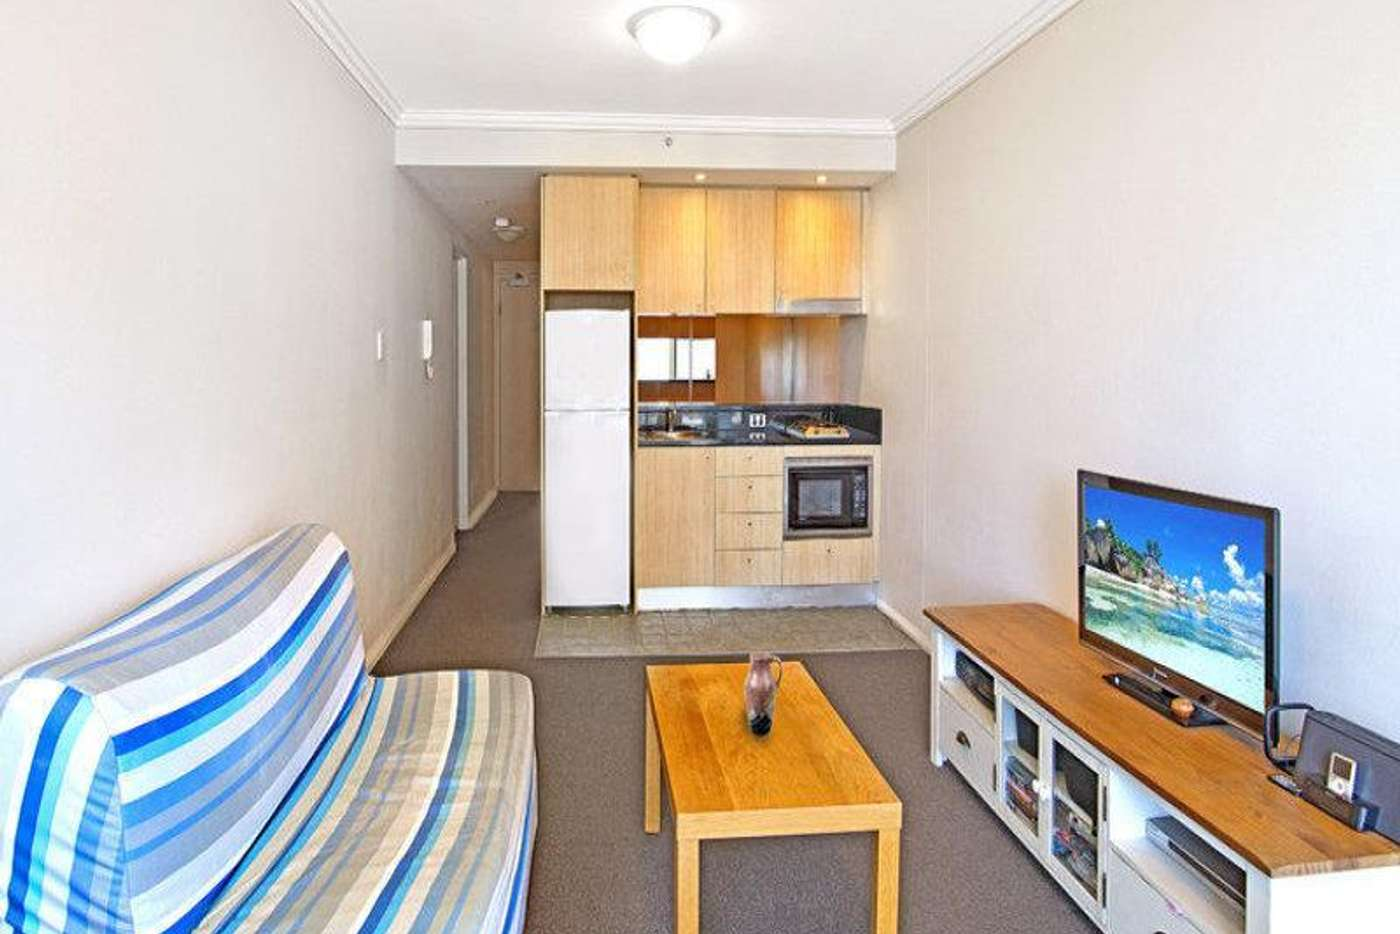 Main view of Homely apartment listing, 1508/1 Sergeants Lane, St Leonards NSW 2065